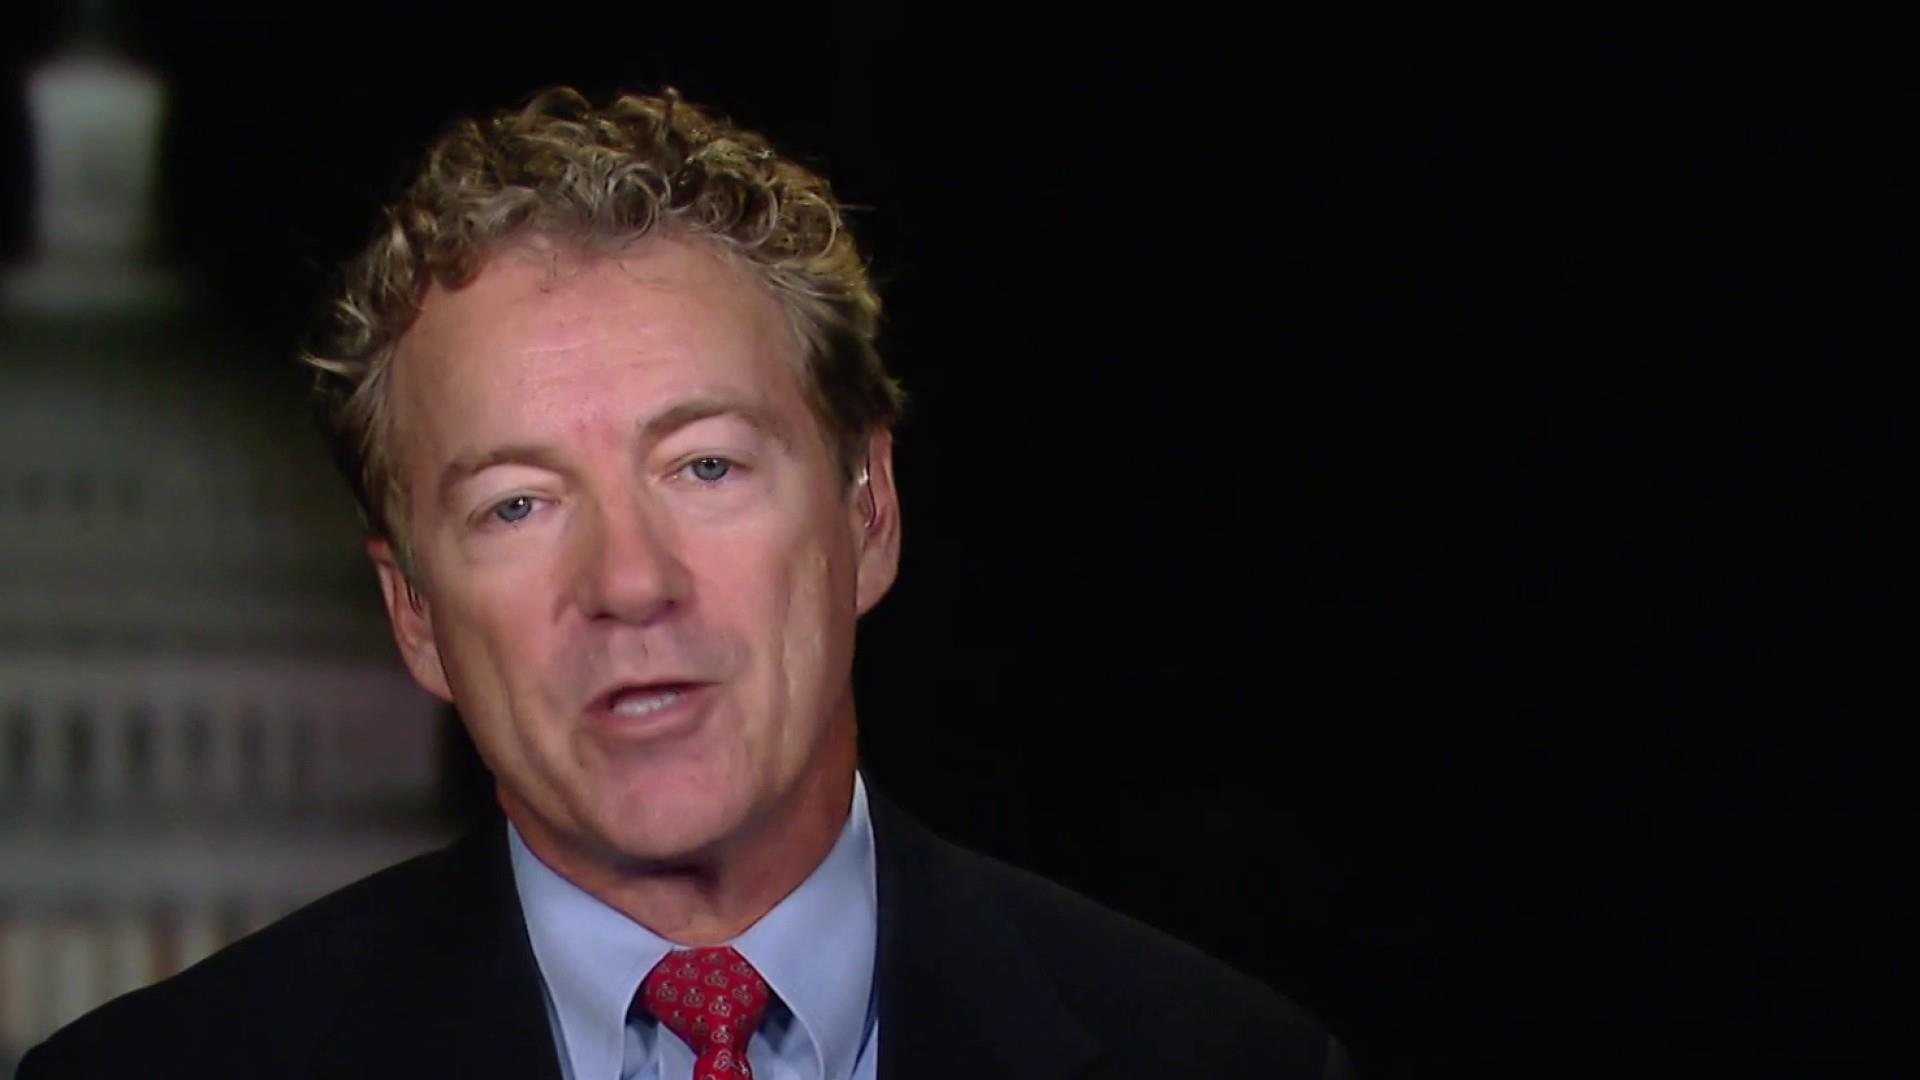 Rand Paul on Syria: I don't see a national interest, I see a huge mess